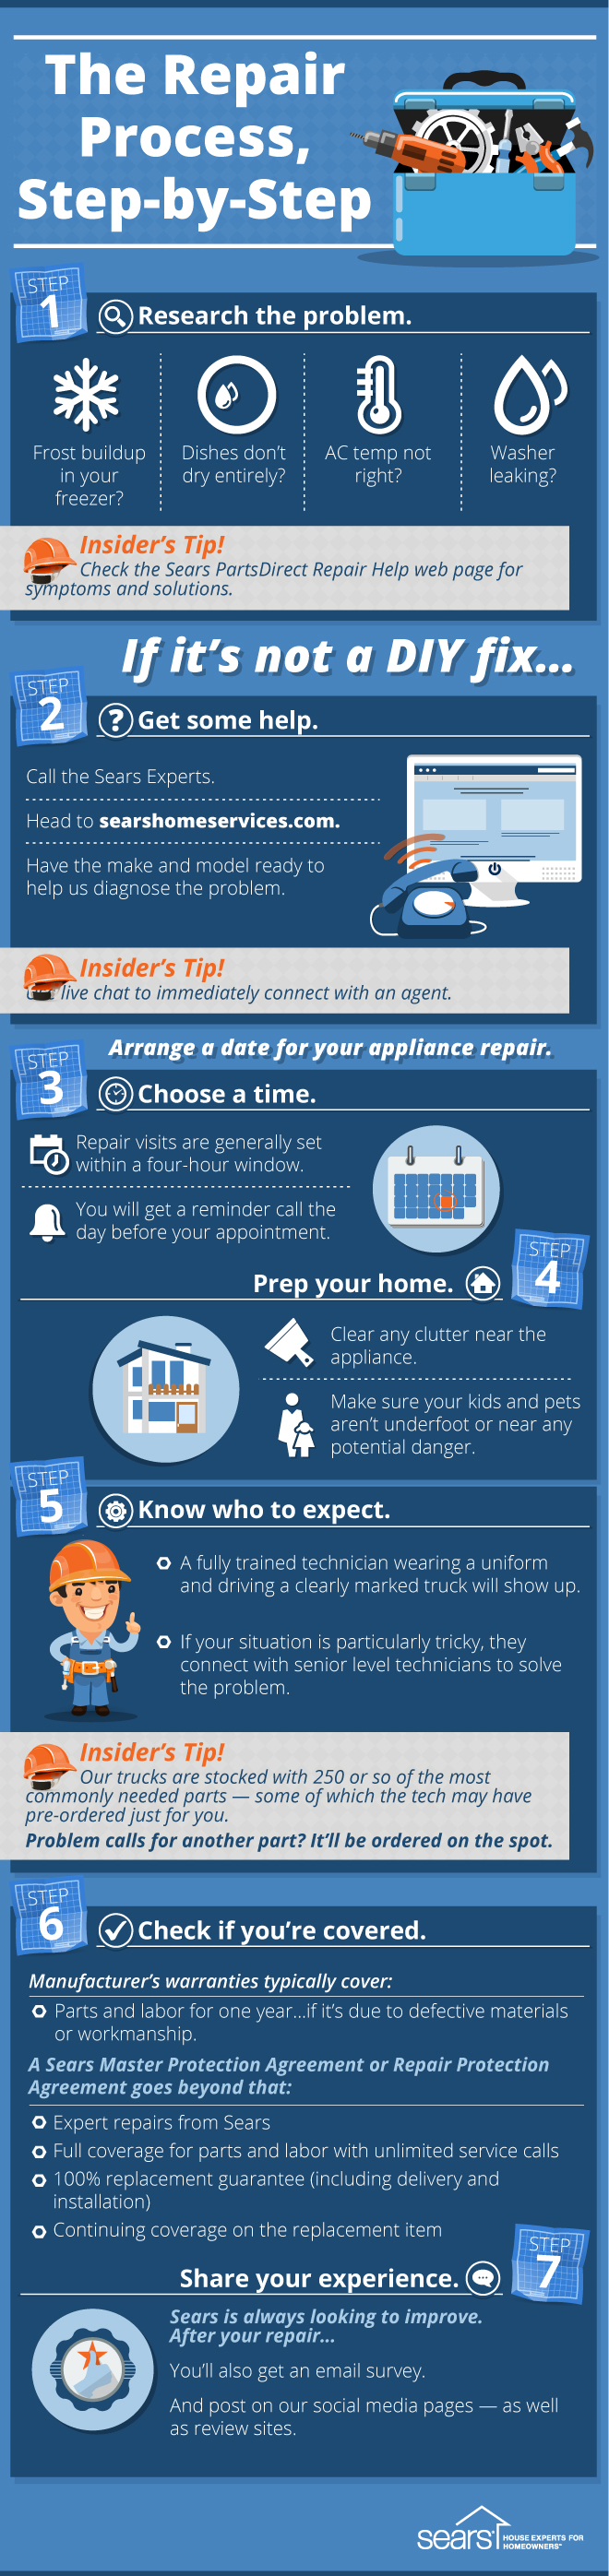 appliance repair process - step-by-step guide